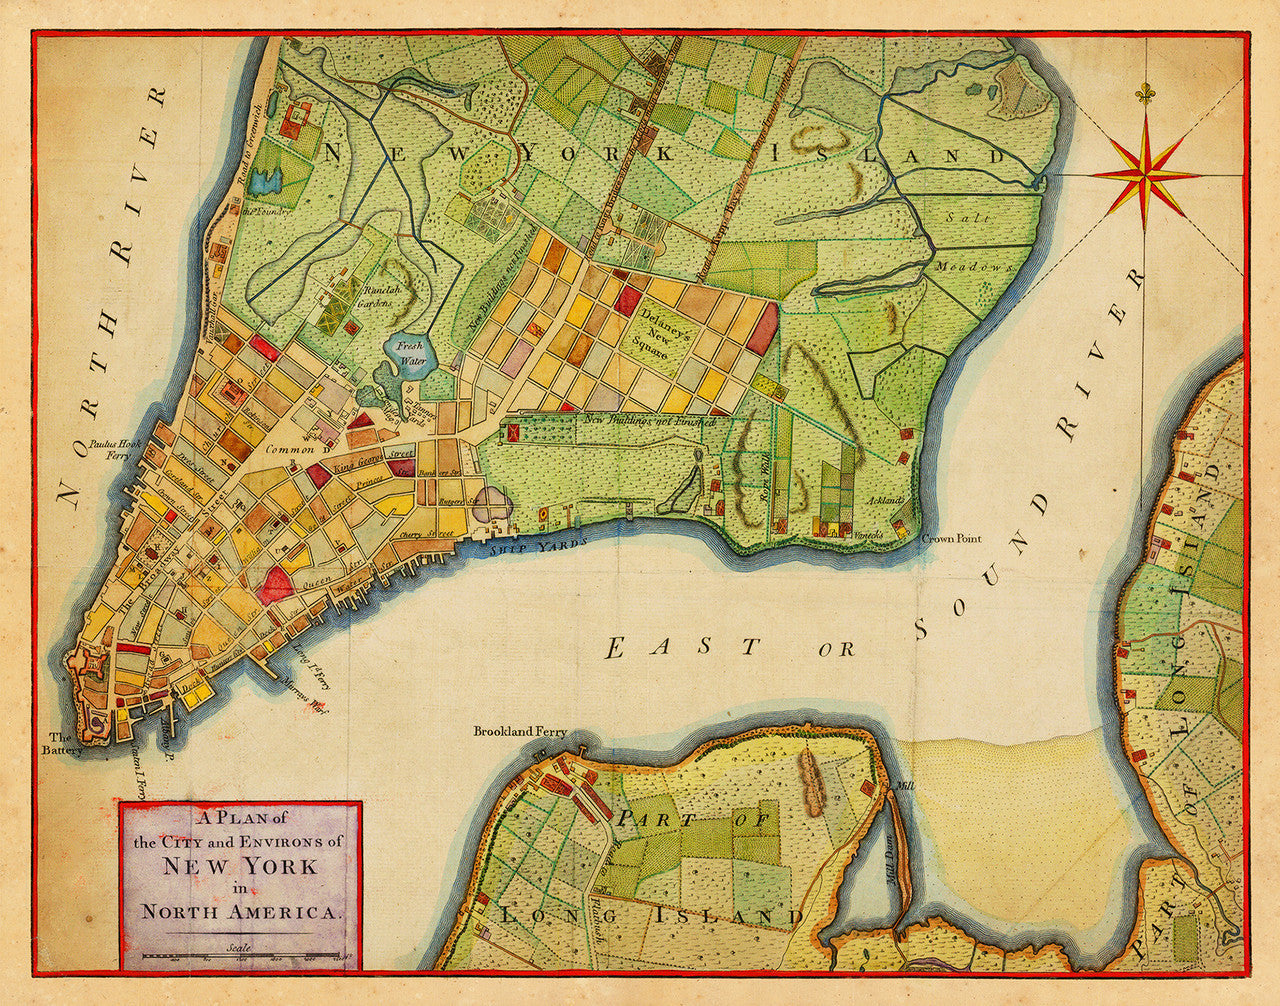 Map Of New York 1776.New York 1776 City Plan Revolutionary Era Map